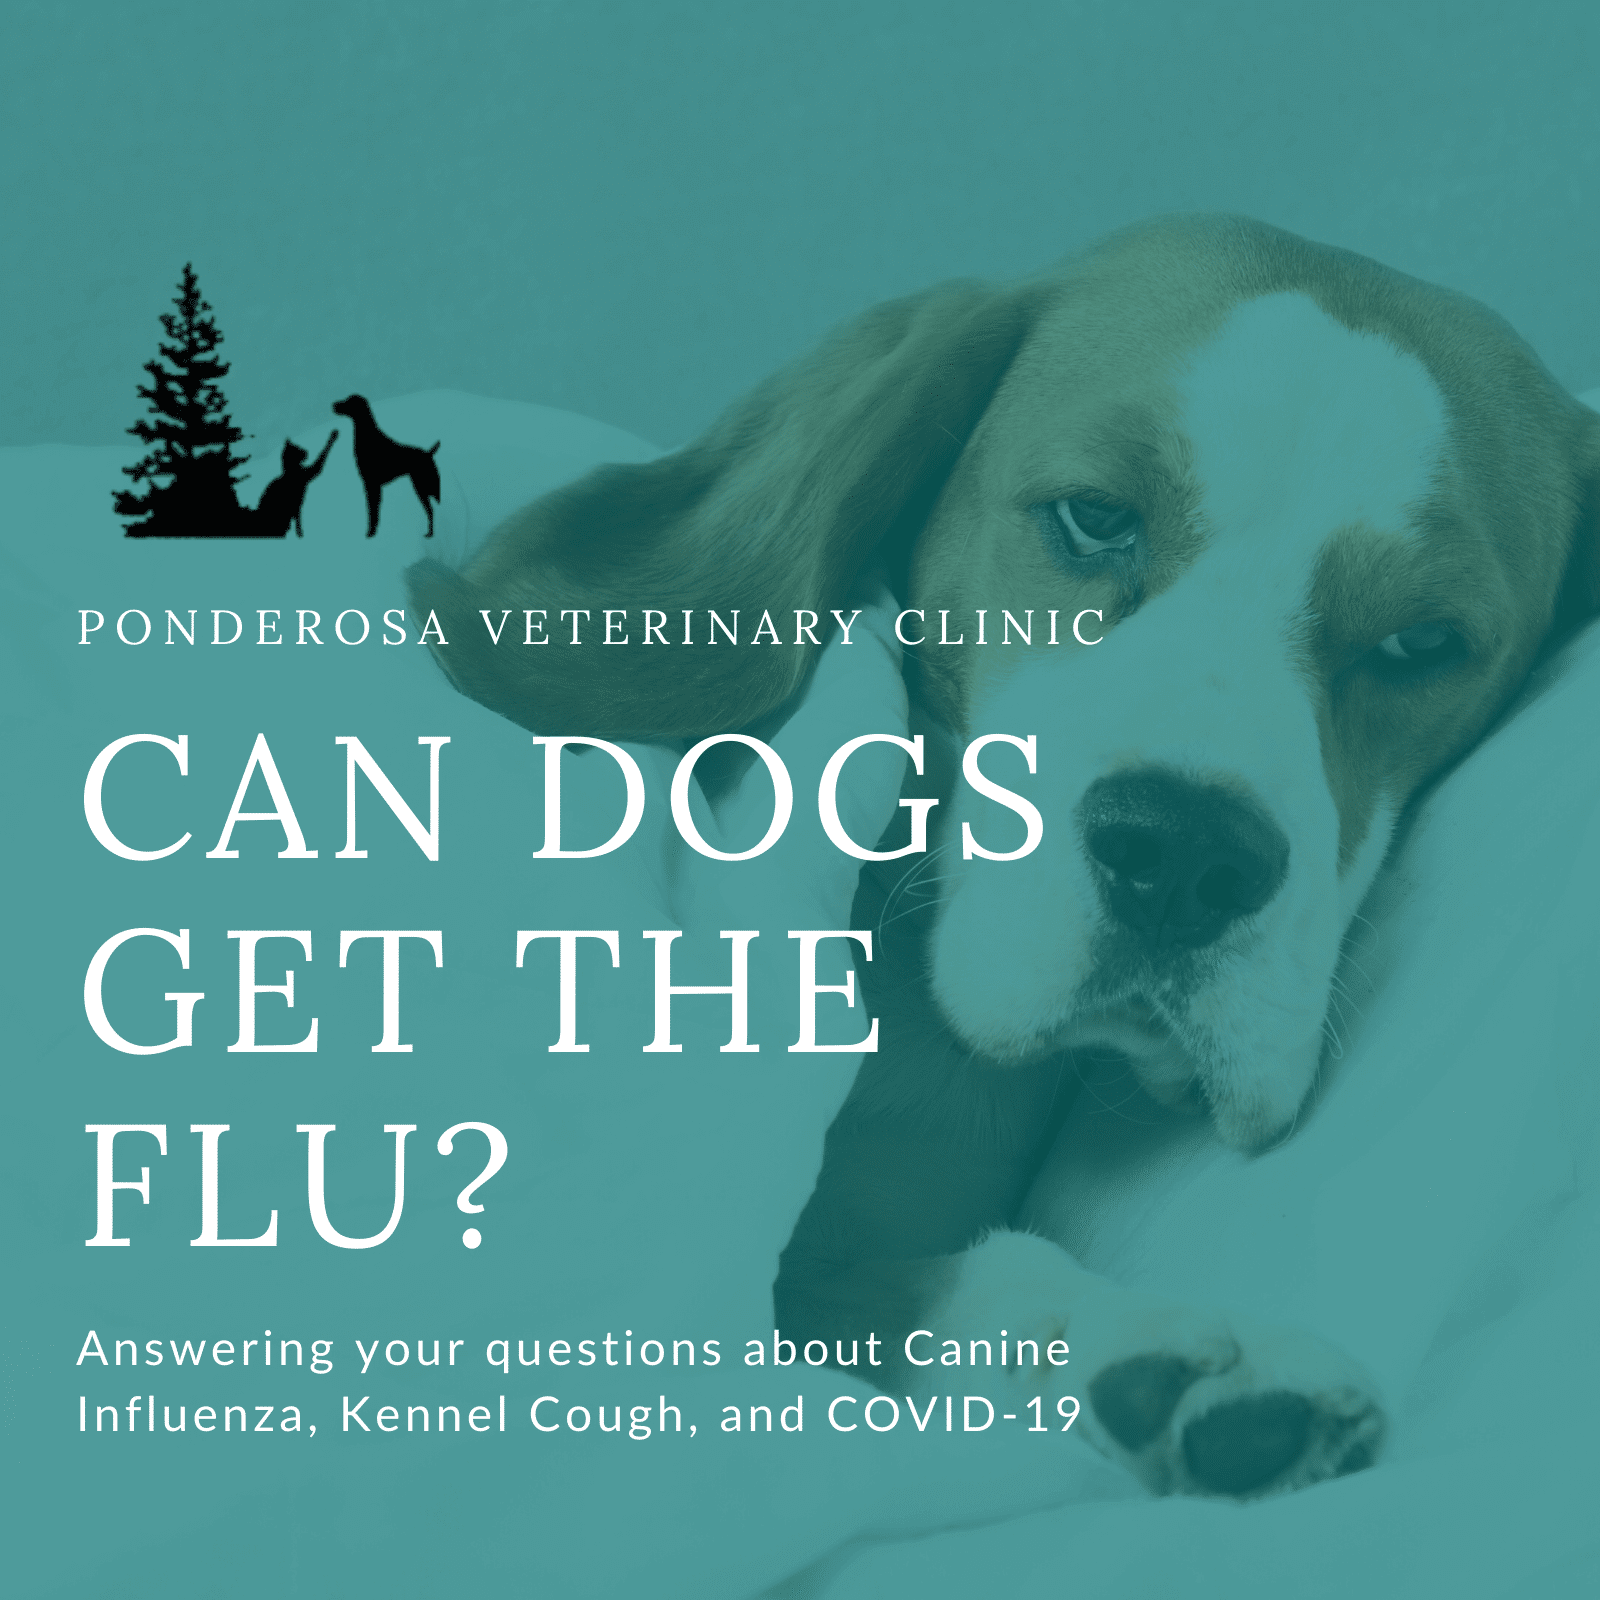 Image of sick dog with the title Can Dogs Get The Flu